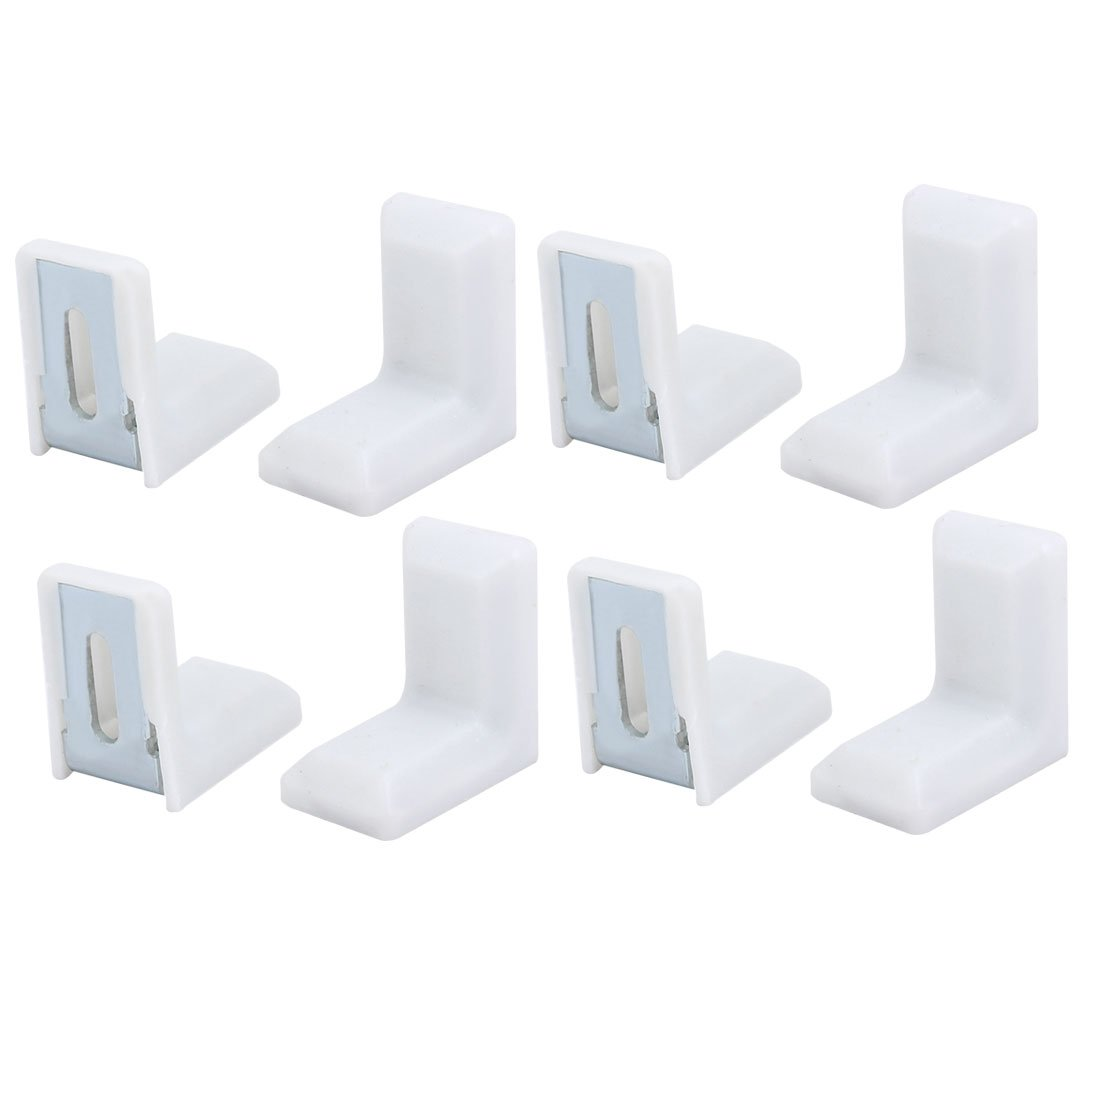 uxcell® Furniture Shelf 90 Degree Angle Brackets Corner Braces Supports White Silver Tone 20 Sets SYNCTEA024911